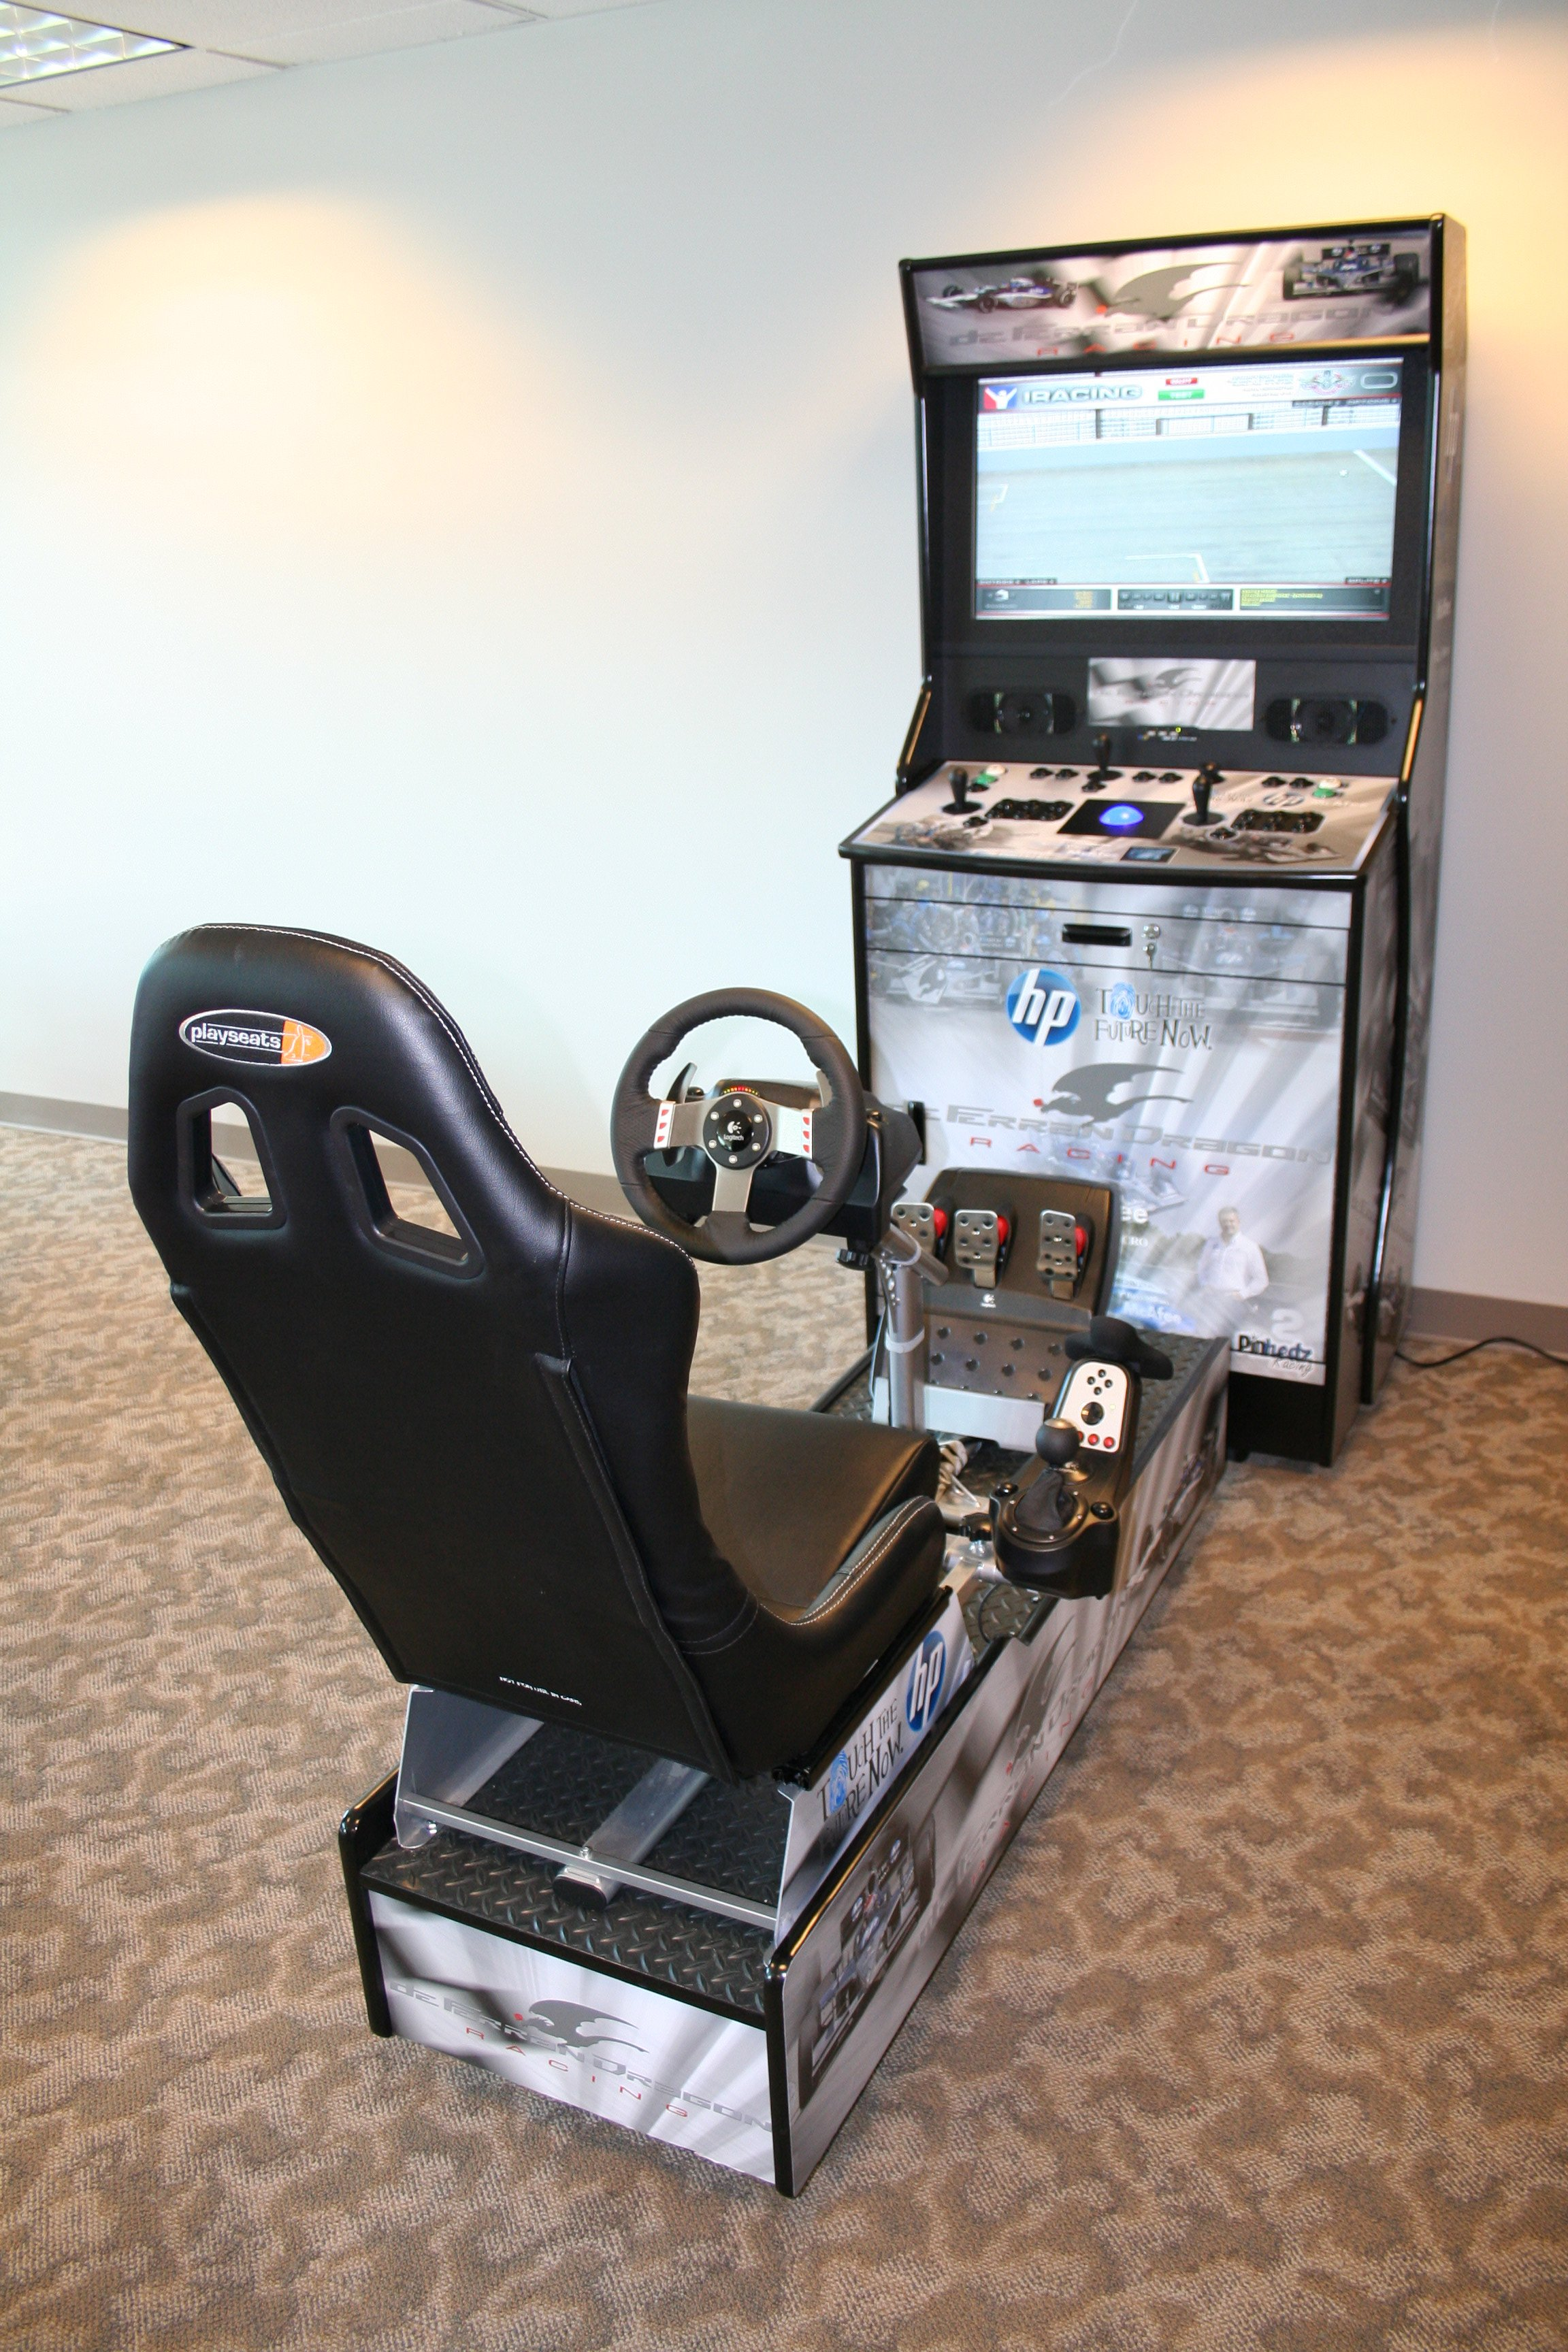 Home Arcade Racing Cabinet